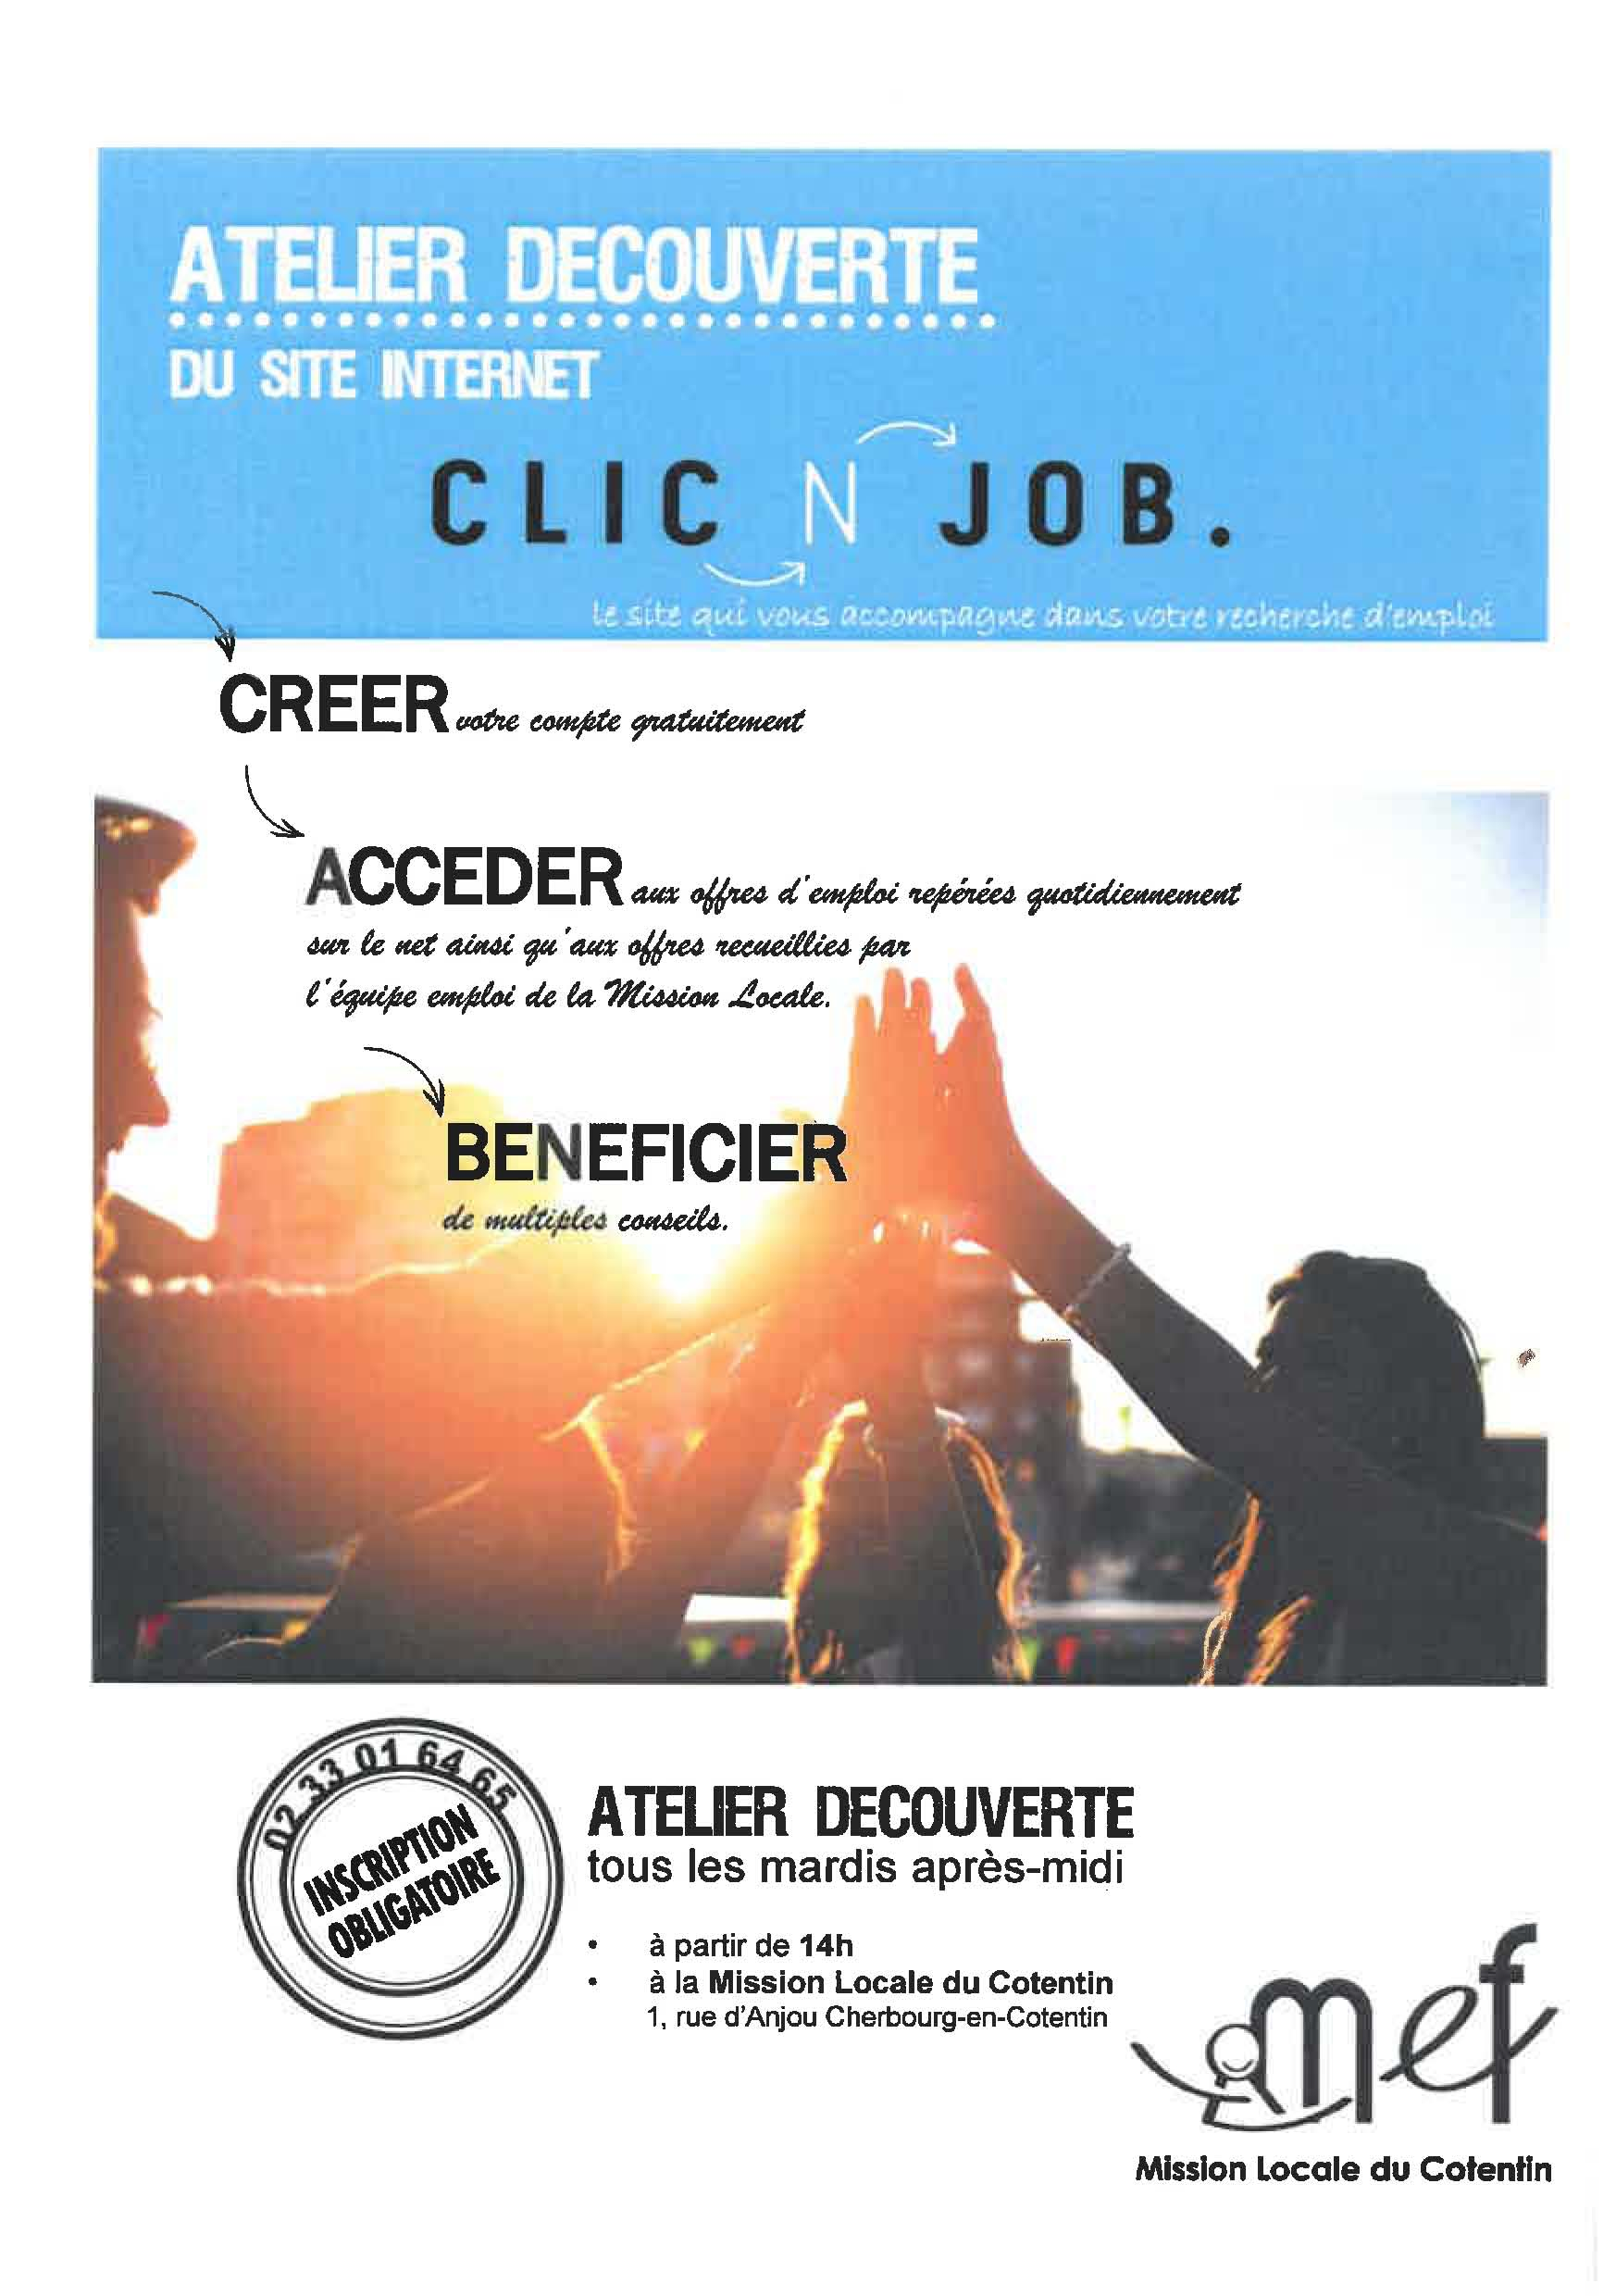 Atelier clicnjob